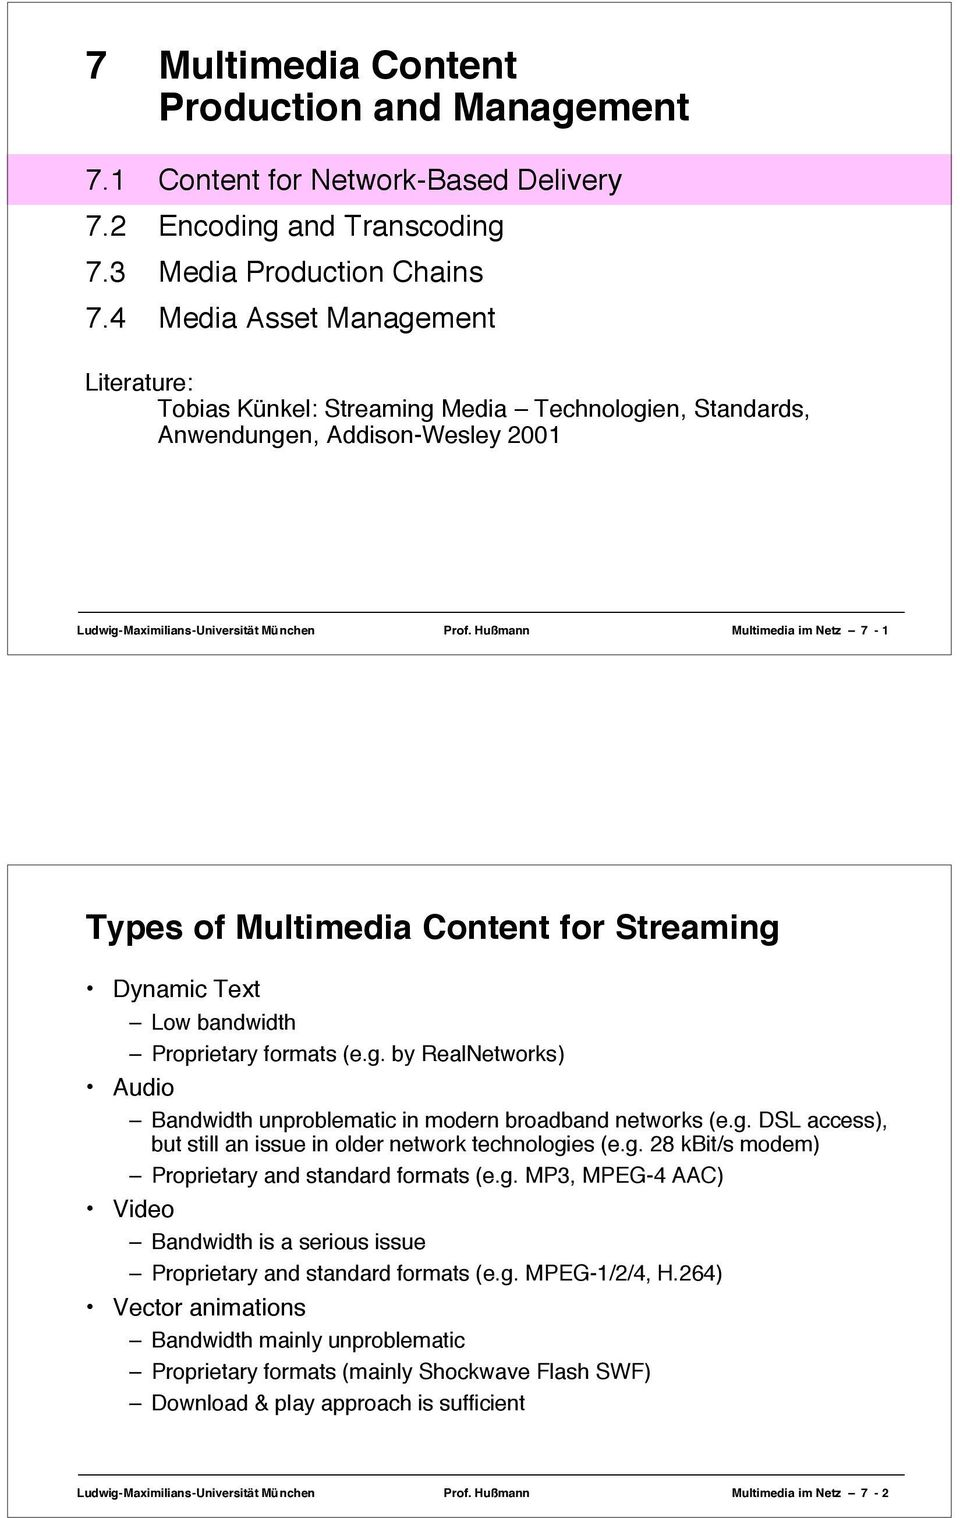 Hußmann Multimedia im Netz 7-1 Types of Multimedia Content for Streaming Dynamic Text Low bandwidth Proprietary formats (e.g. by RealNetworks) Audio Bandwidth unproblematic in modern broadband networks (e.